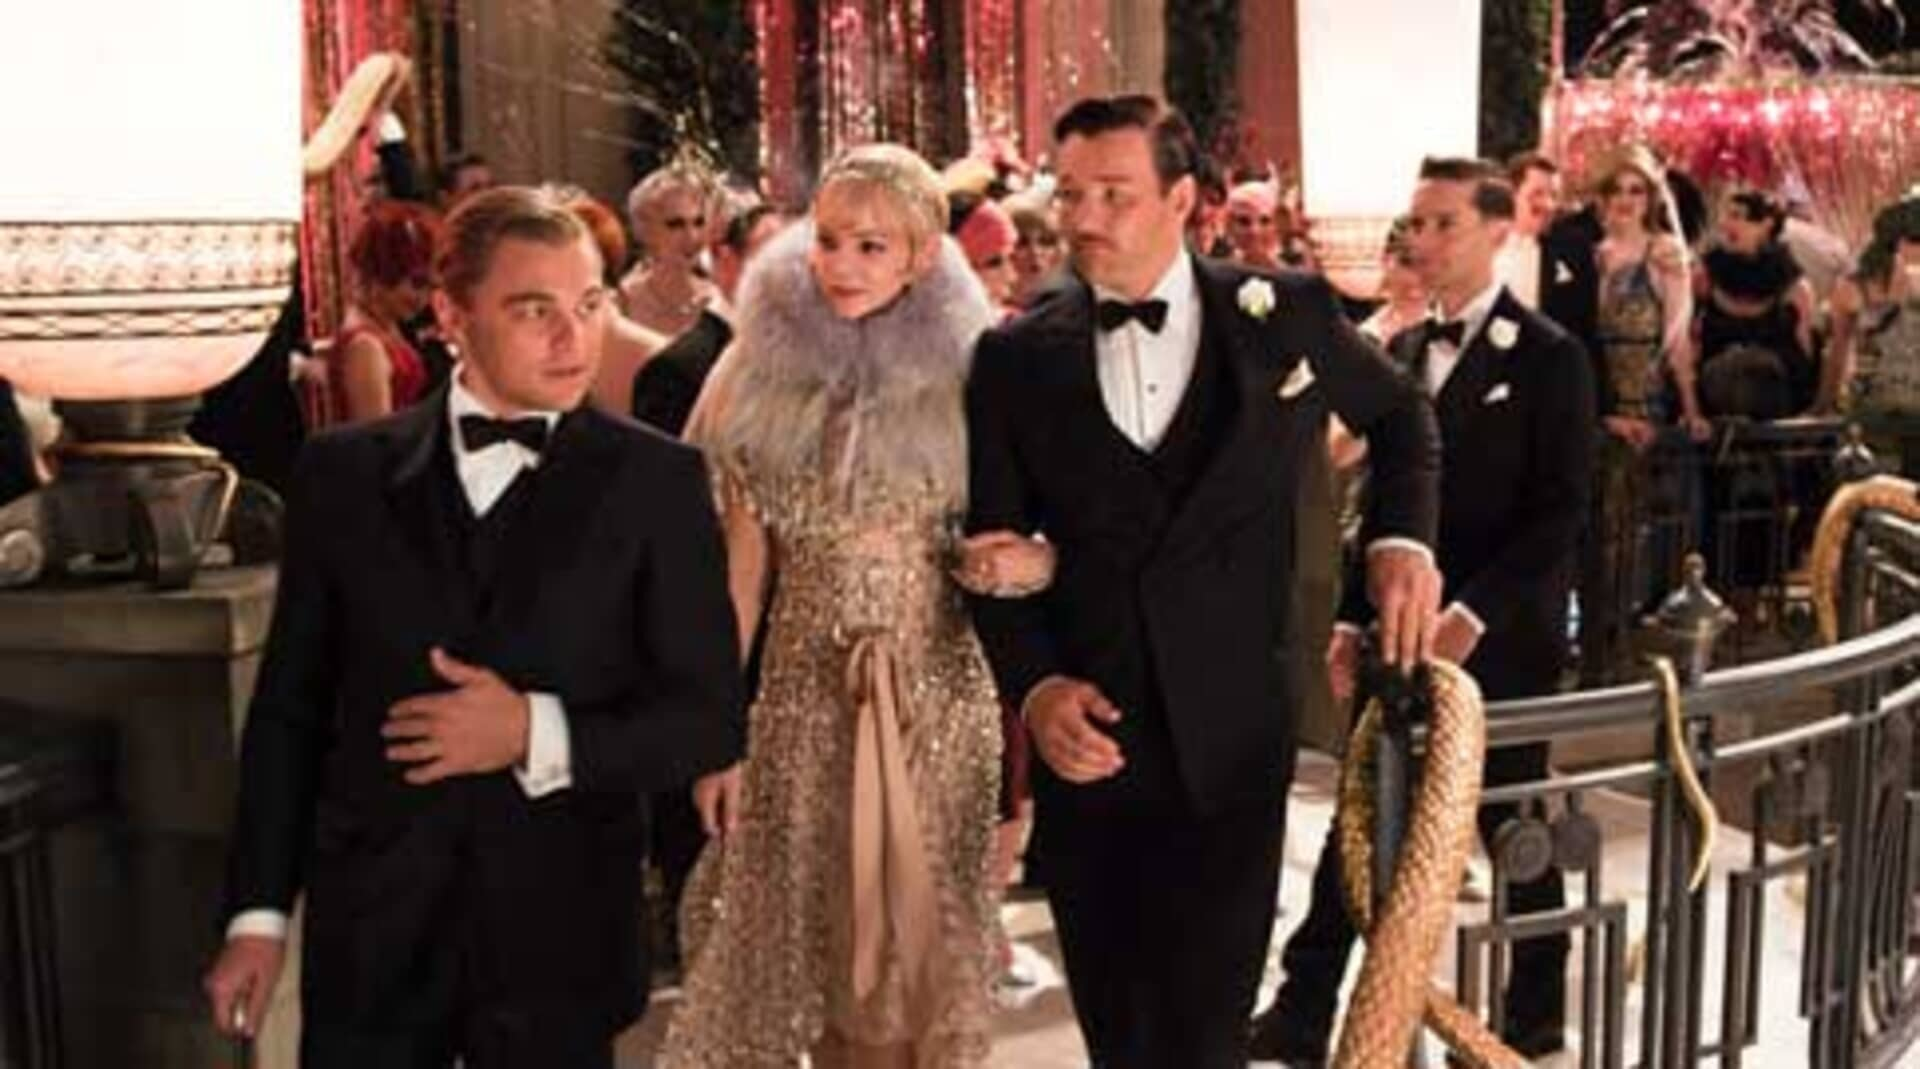 The Great Gatsby - Image 4